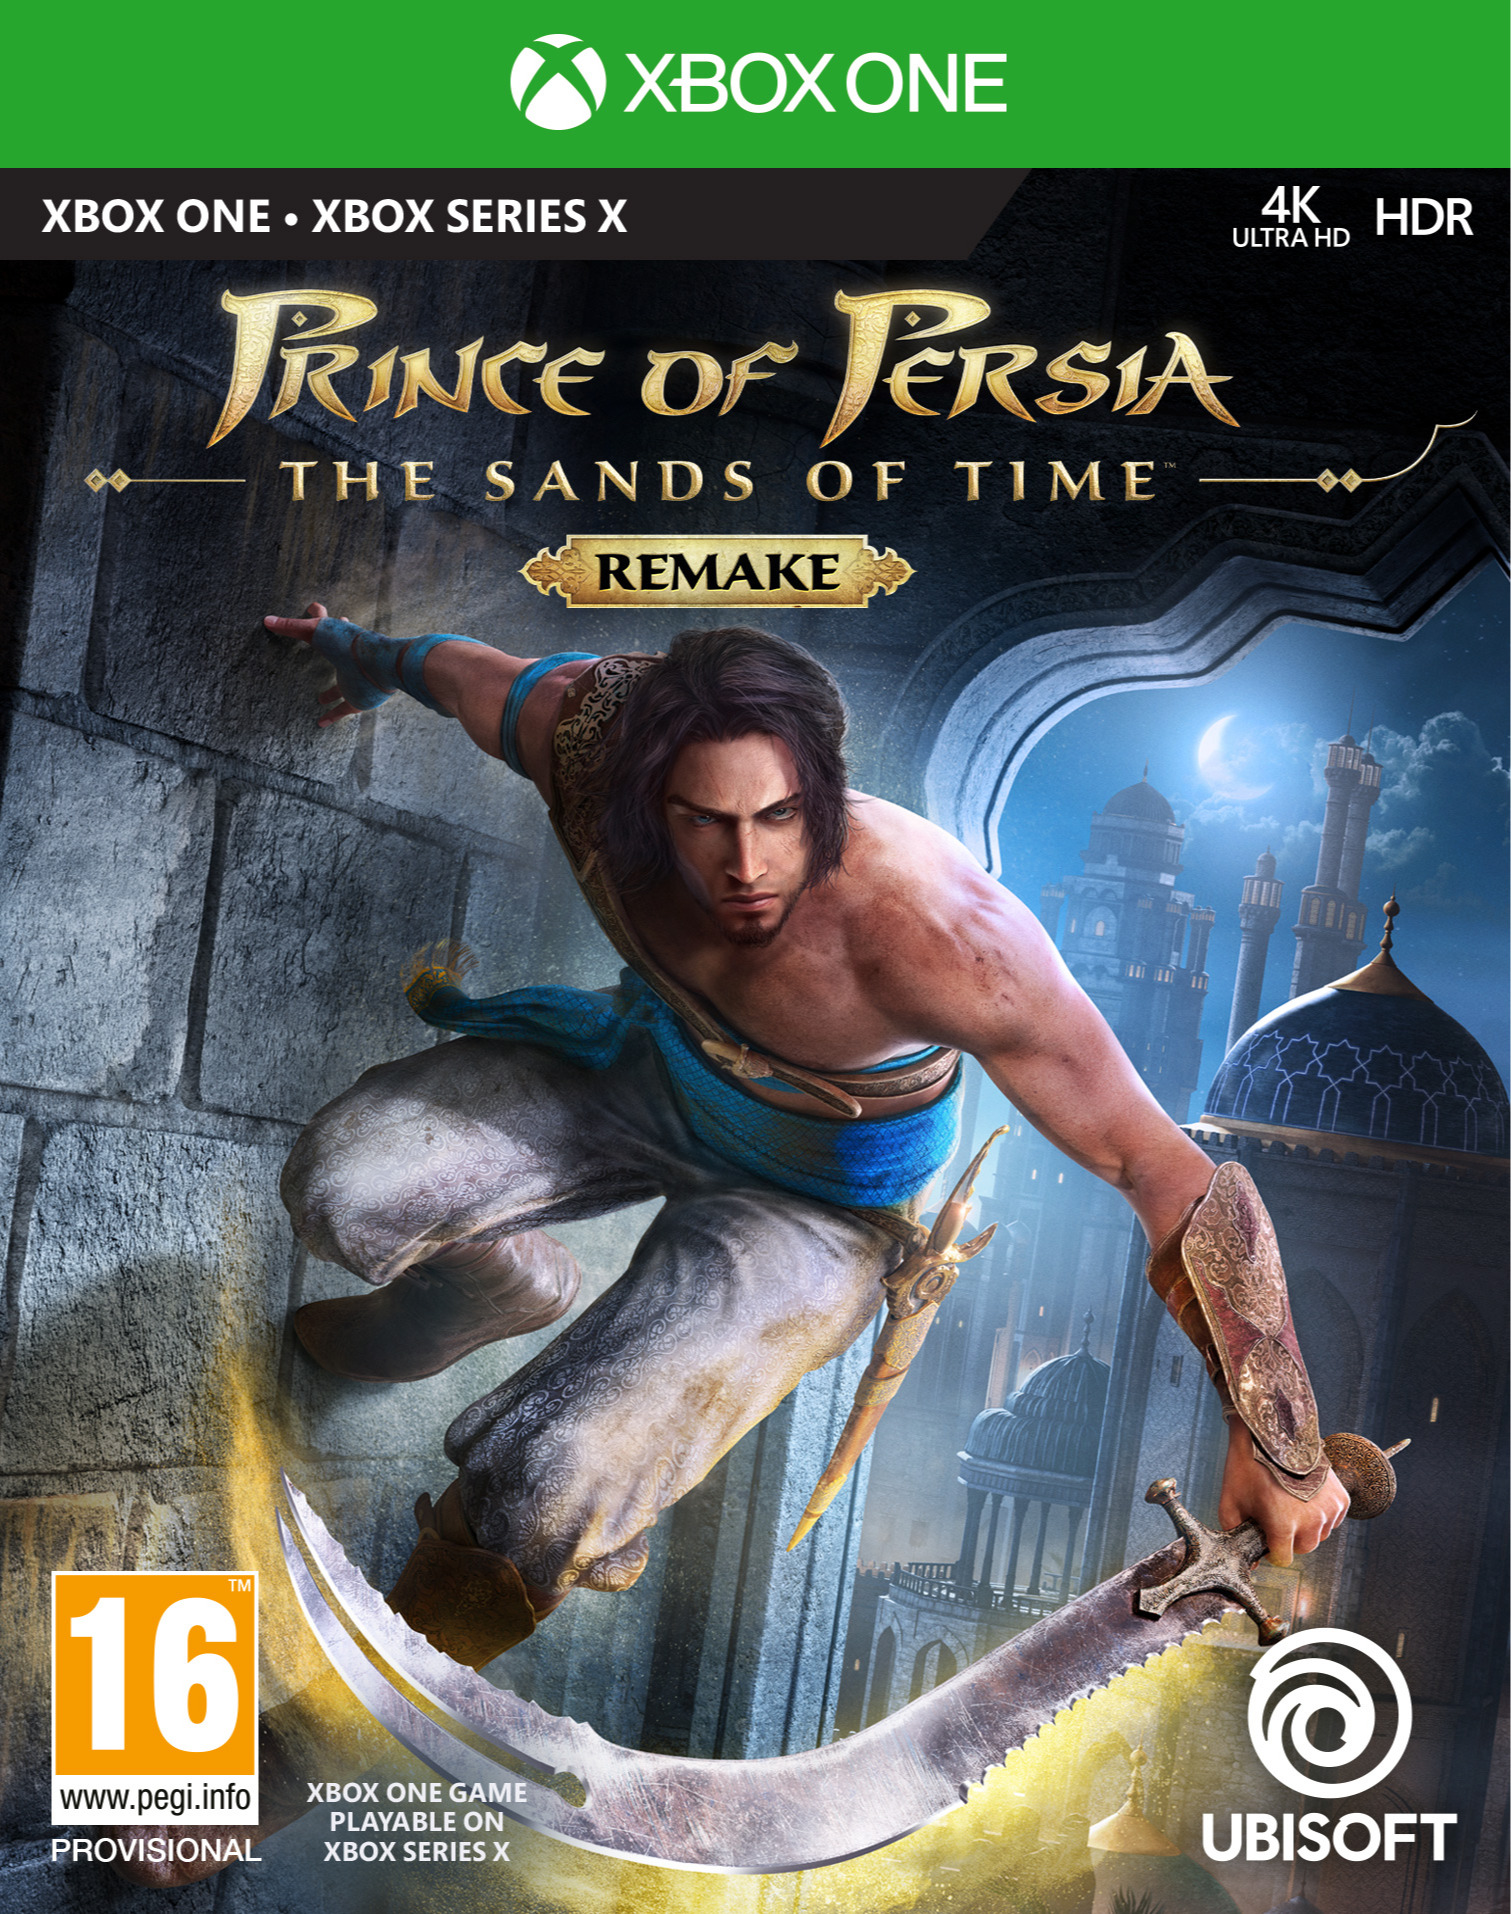 Prince of Persia: The Sands of Time Remake (XONE)